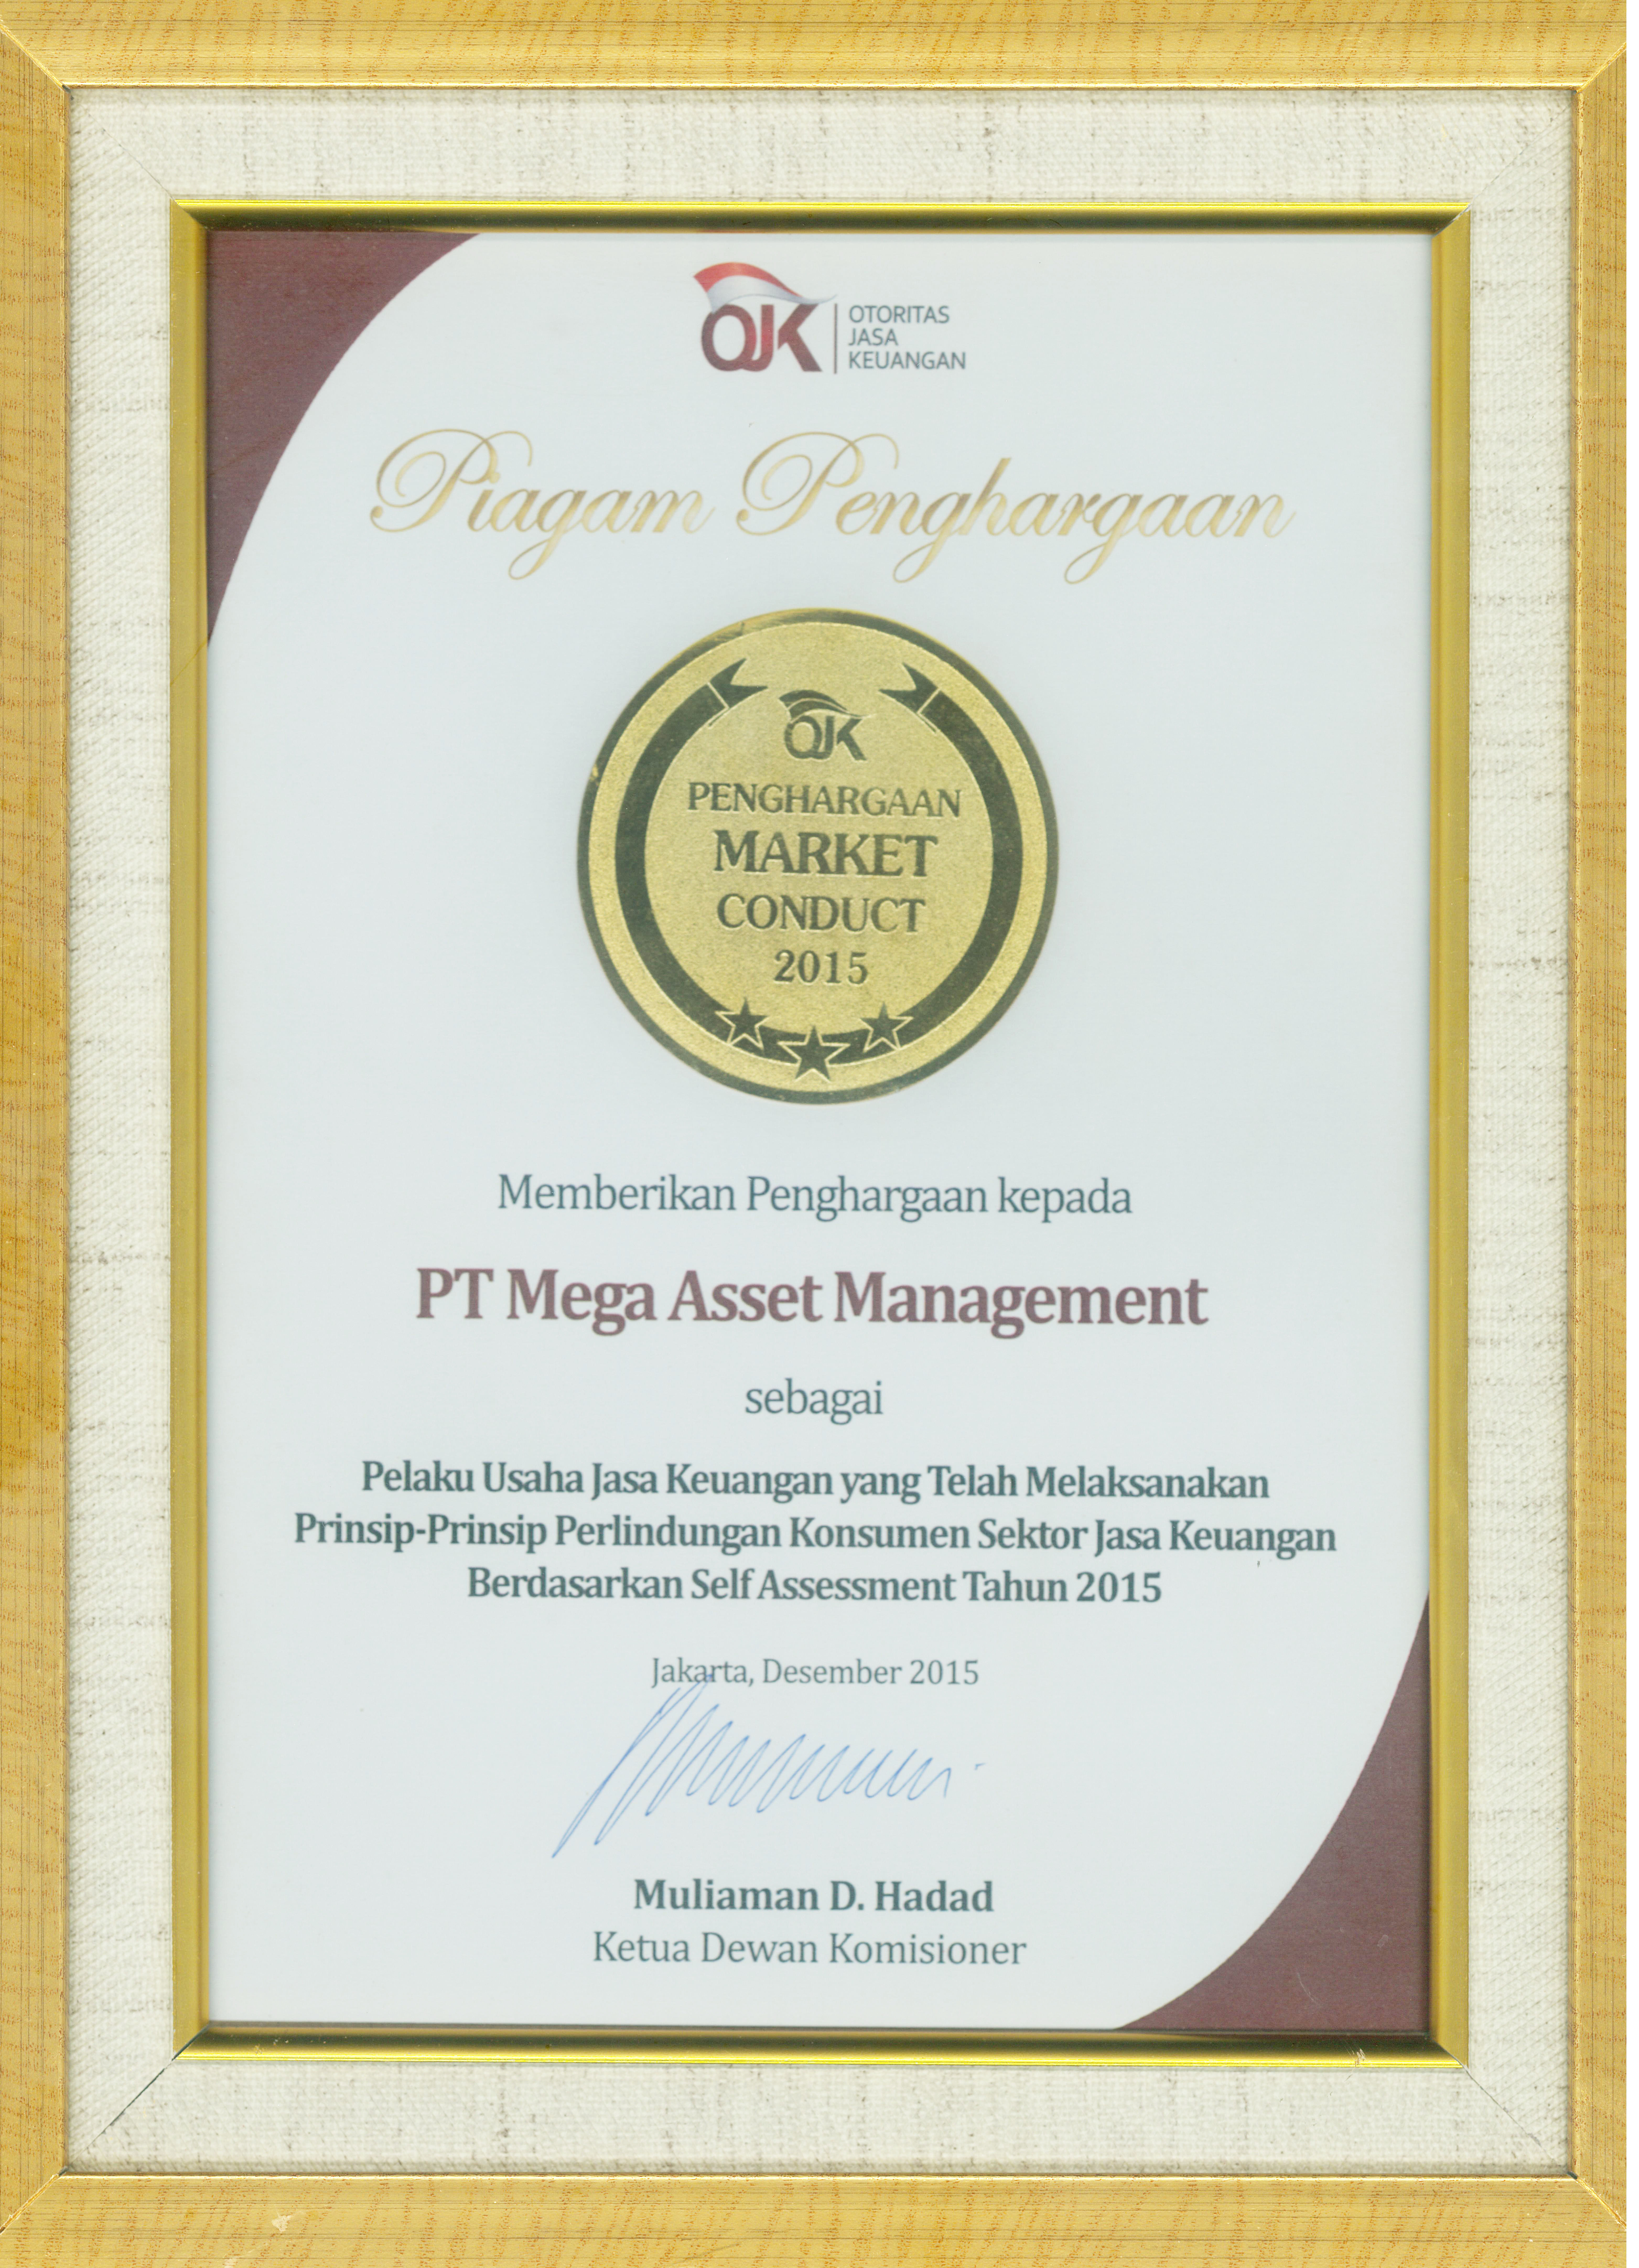 Market Conduct Award